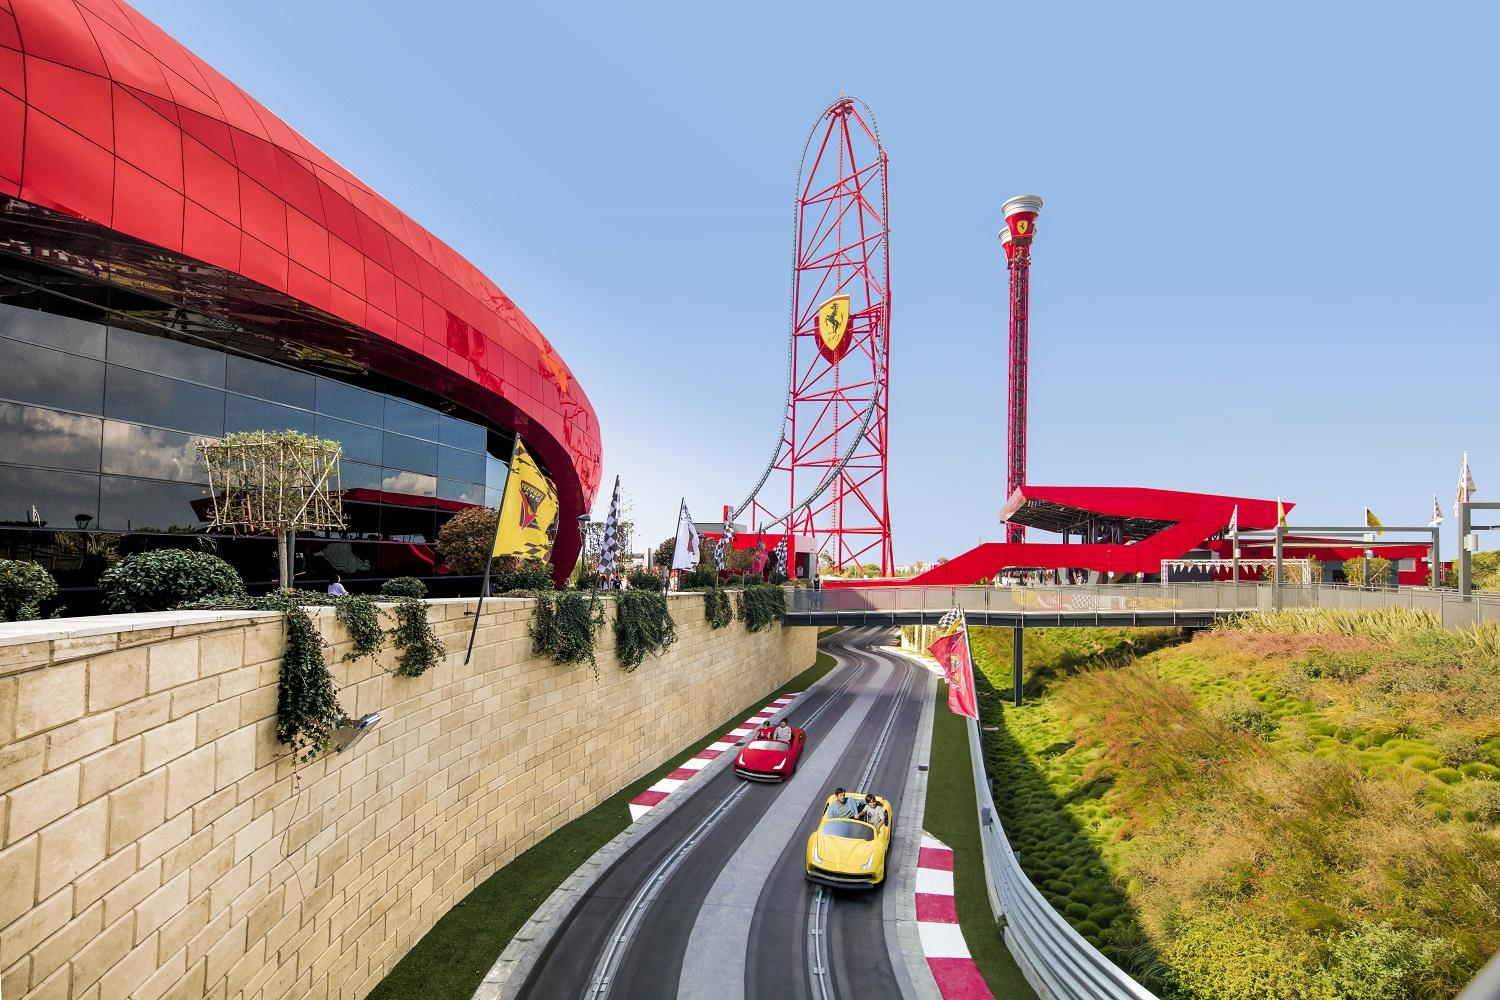 One Day Trip to PortAventura and Ferrari Land from Barcelona ...